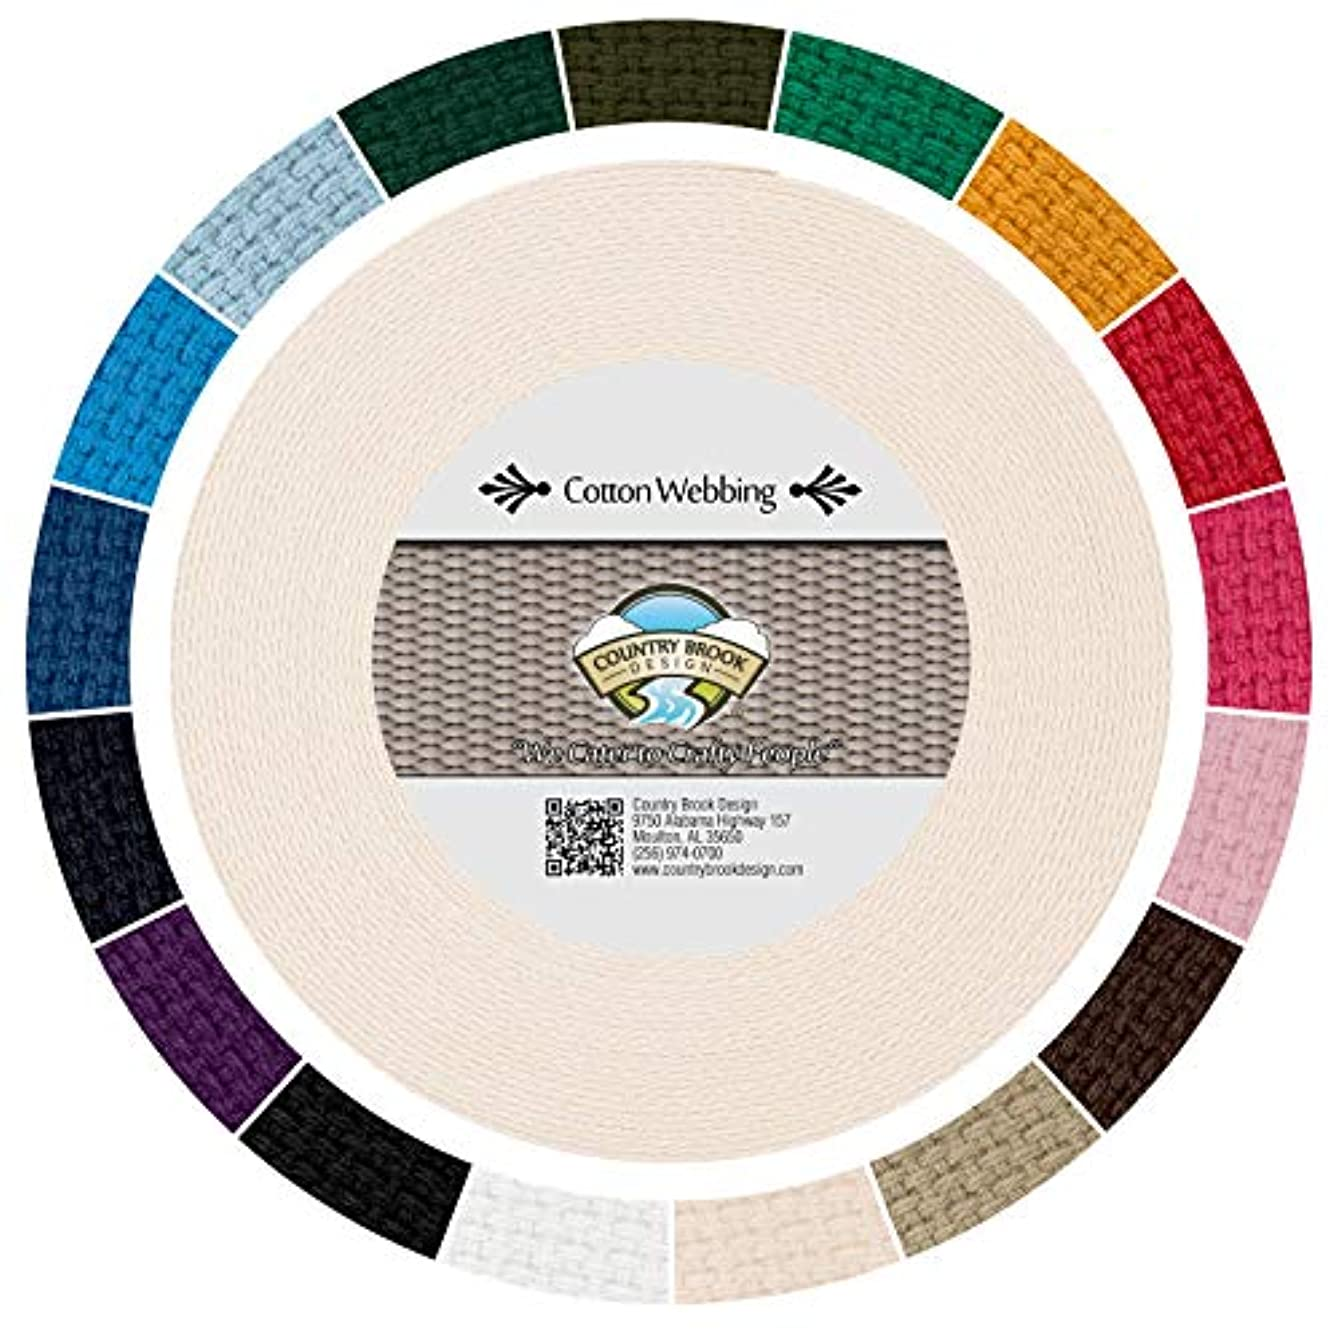 Country Brook Design | Heavy Cotton Webbing with 17 Vibrant Color Options (1 Inch) (25 Yards, Natural)